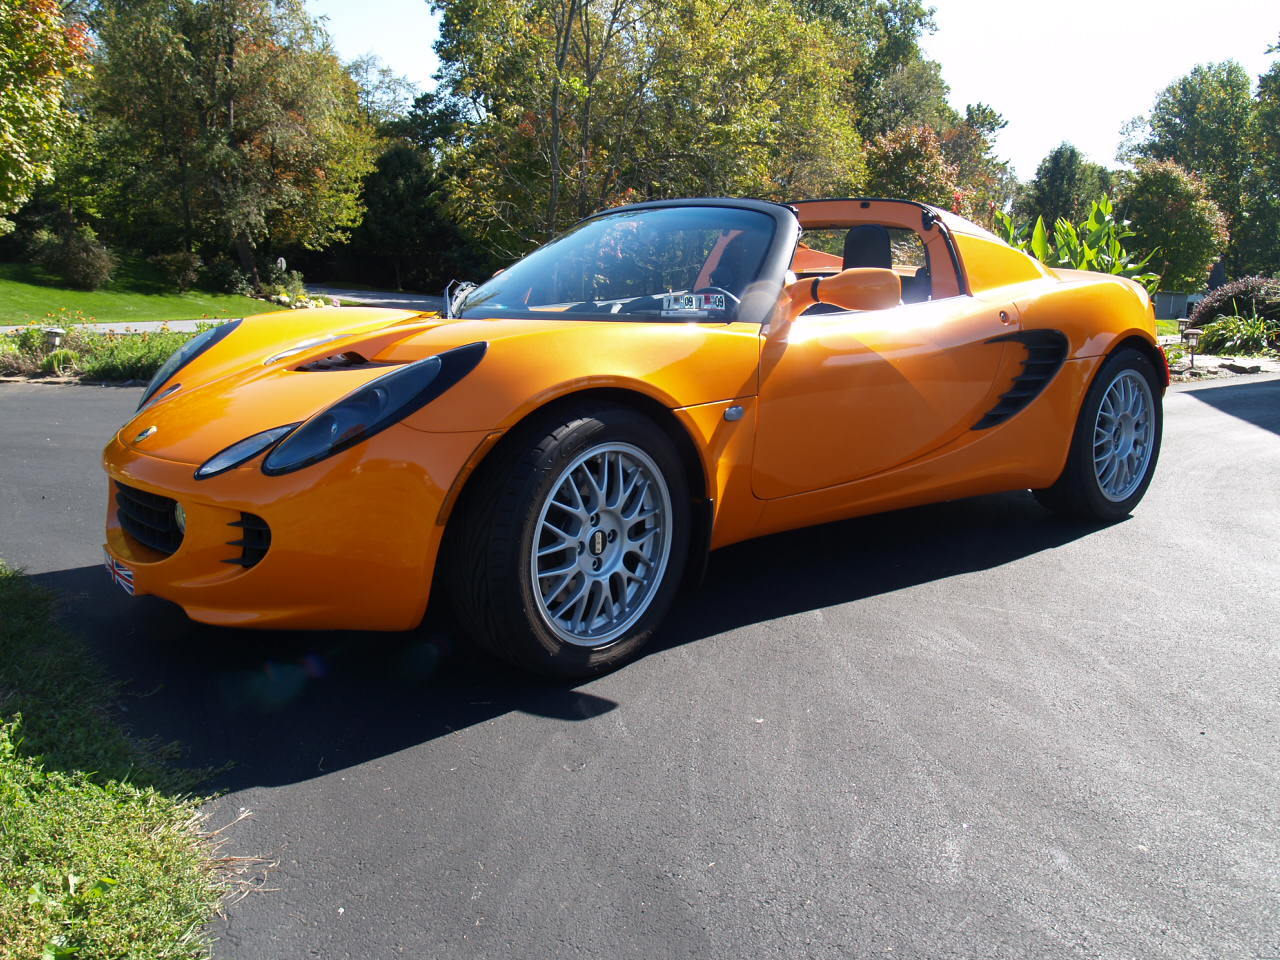 brucelise 39 s 2005 lotus elise in south east pa. Black Bedroom Furniture Sets. Home Design Ideas